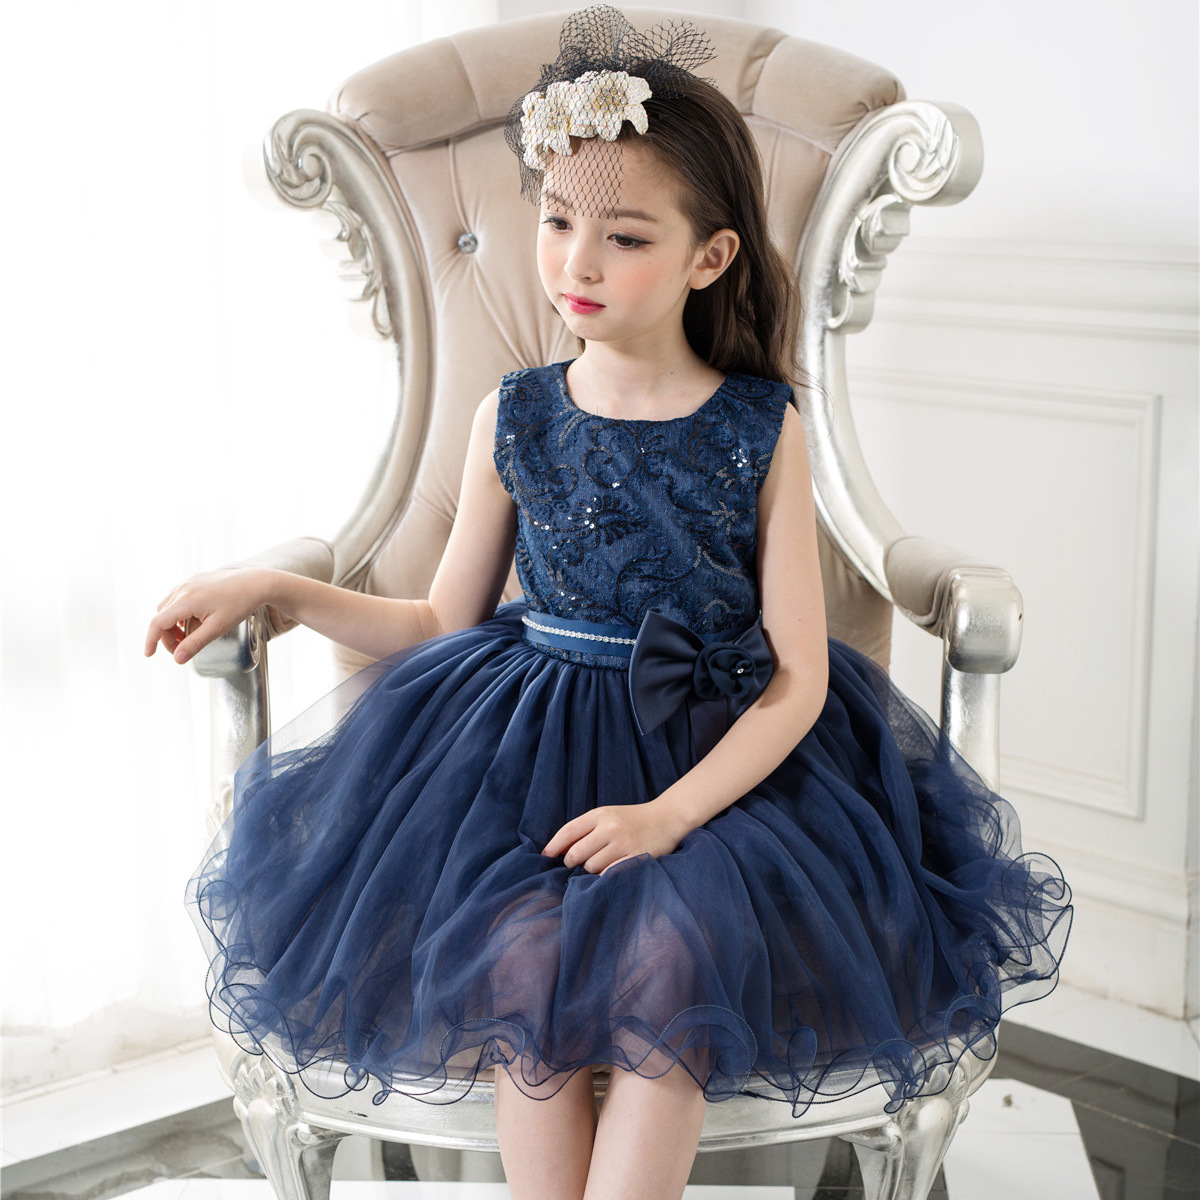 Formal Girls Dress Birthday Wear Navy Blue Flower Girl Vestido for Wedding 2017 Girl Clothes 3 4 6 8 10 12Years Old RKF174007(China (Mainland))